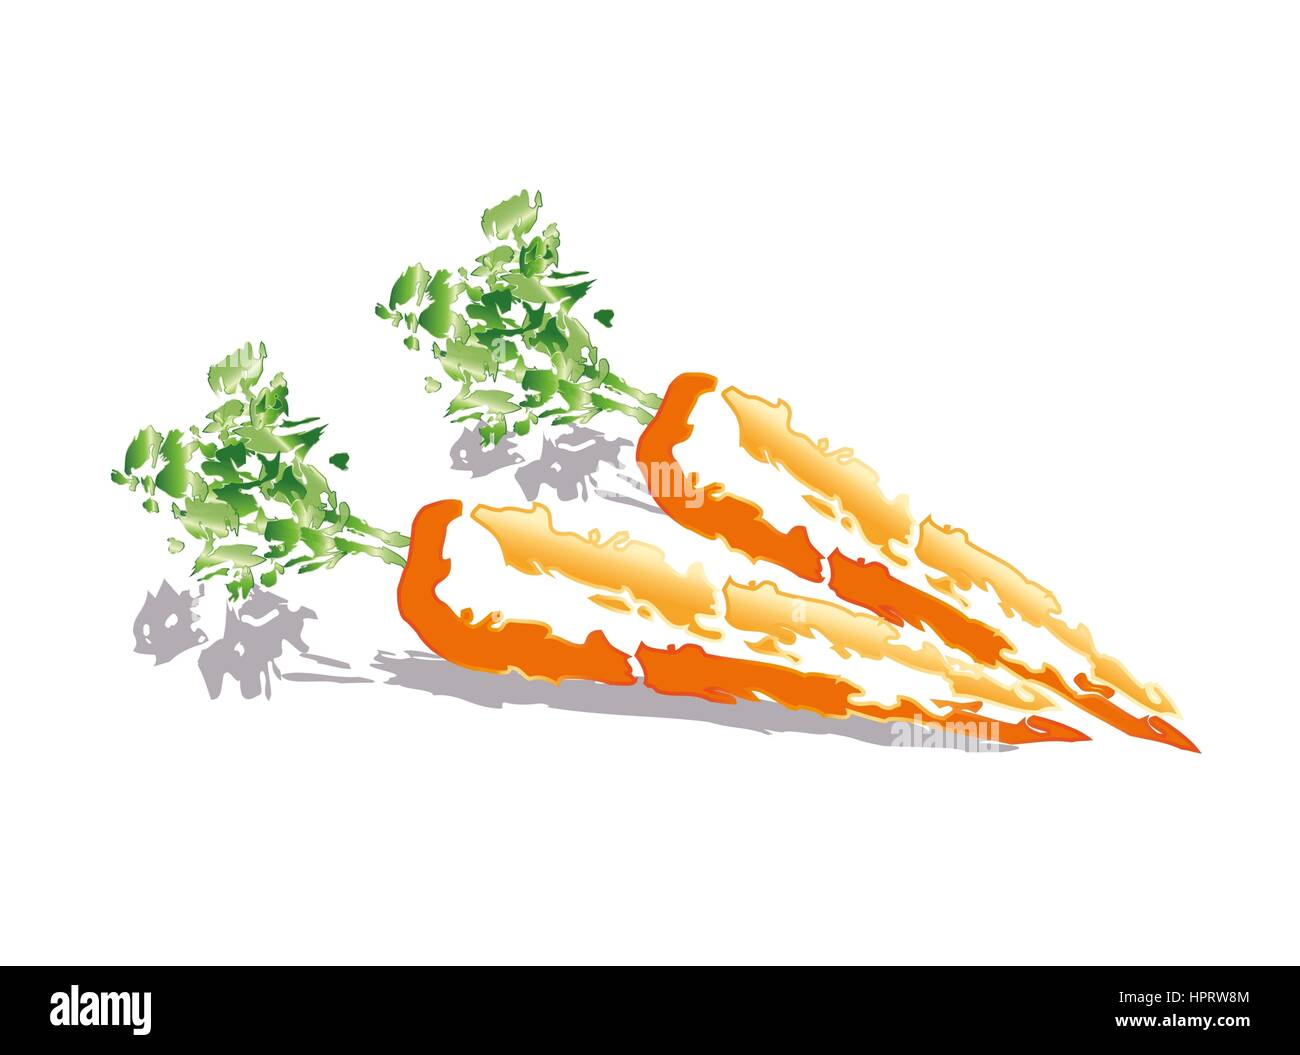 Abstract carrots on white background - Stock Image